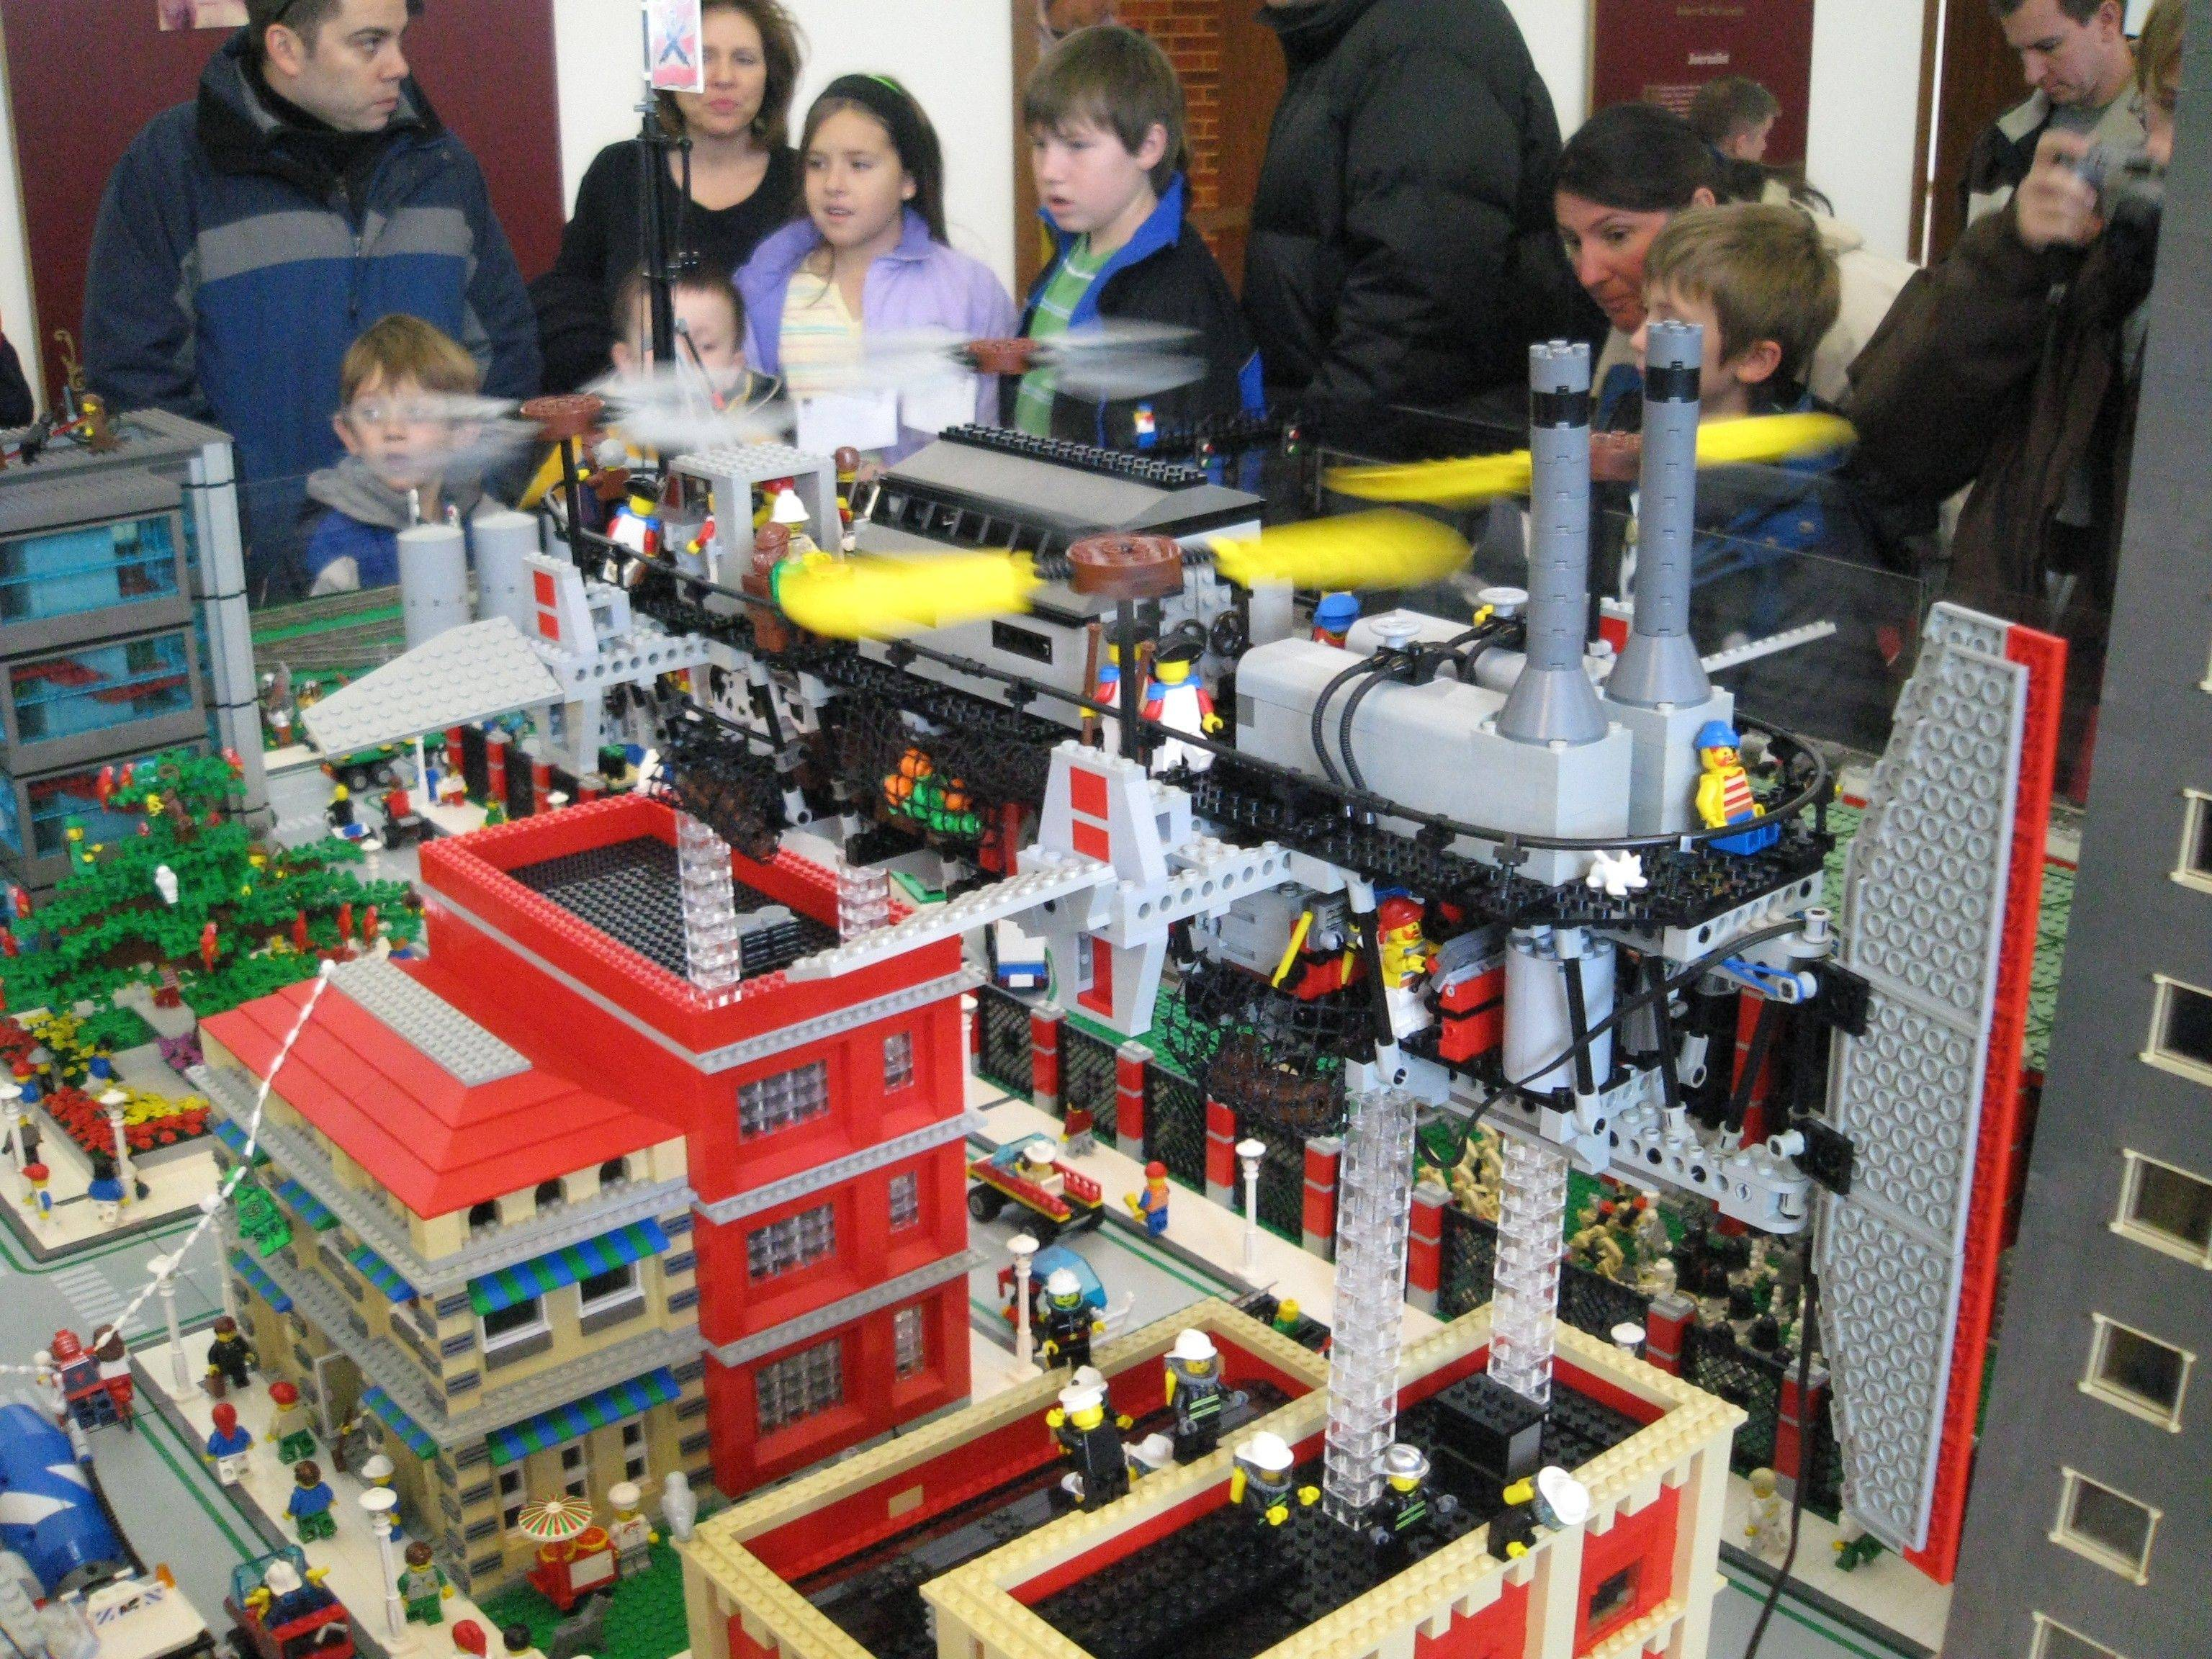 As model trains chug past, visitors can explore a Lego world  complete with bustling cities  created by the Northern Illinois Lego Train Club.